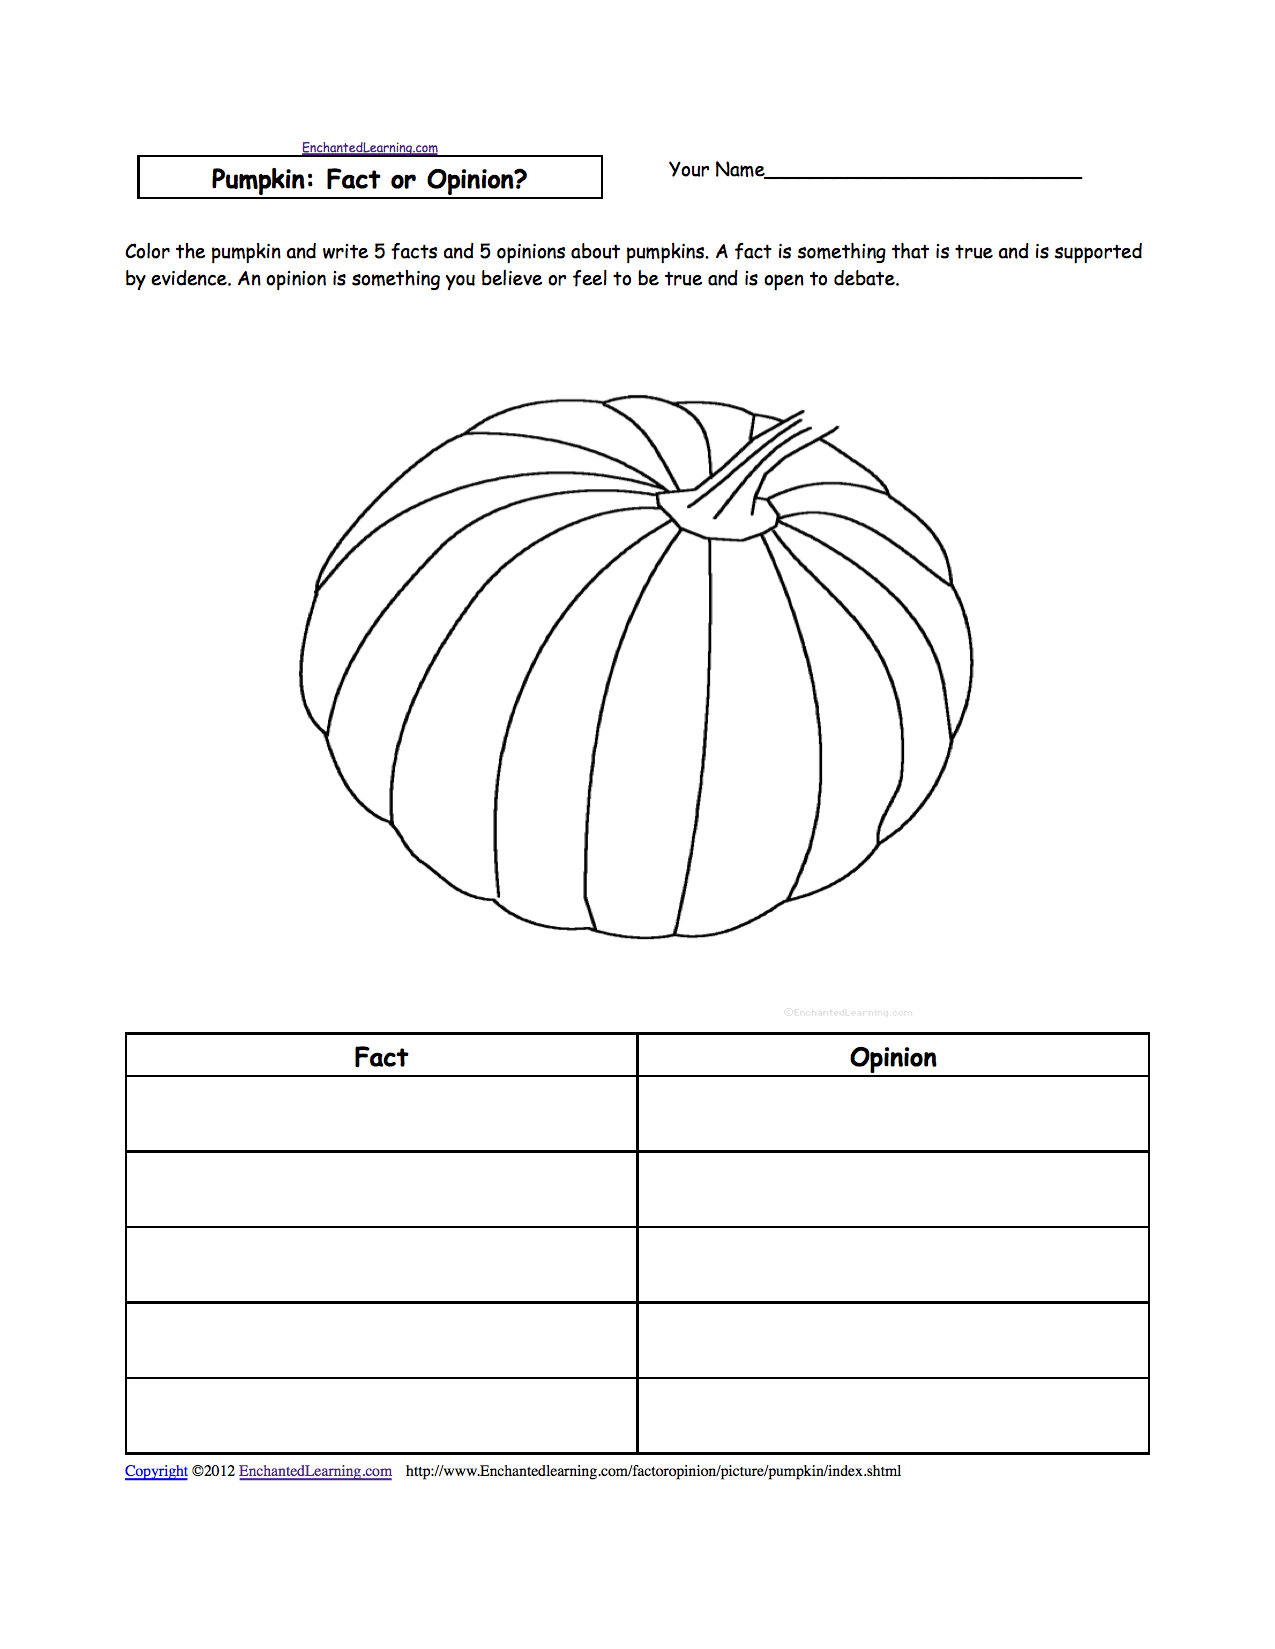 Fruits and Vegetables: Spelling Worksheets - EnchantedLearning.com